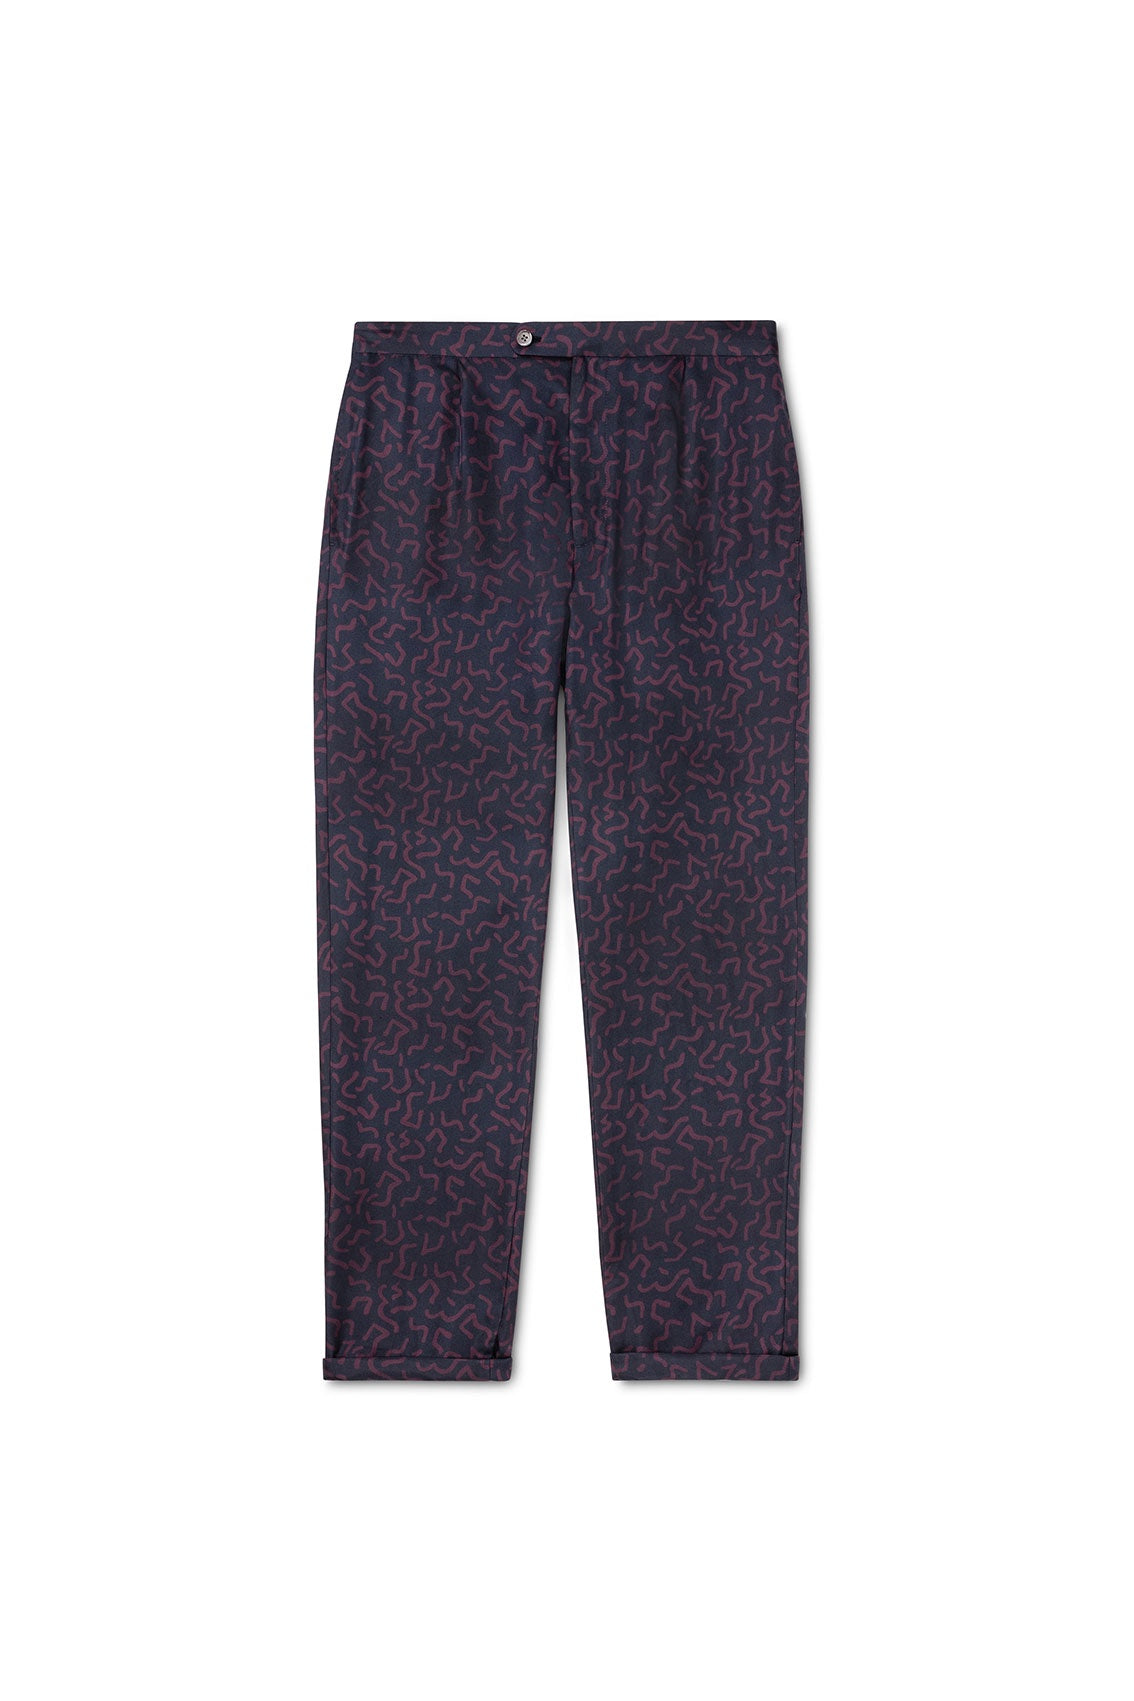 P Johnson Squiggle Print Silk Drawstring Trousers